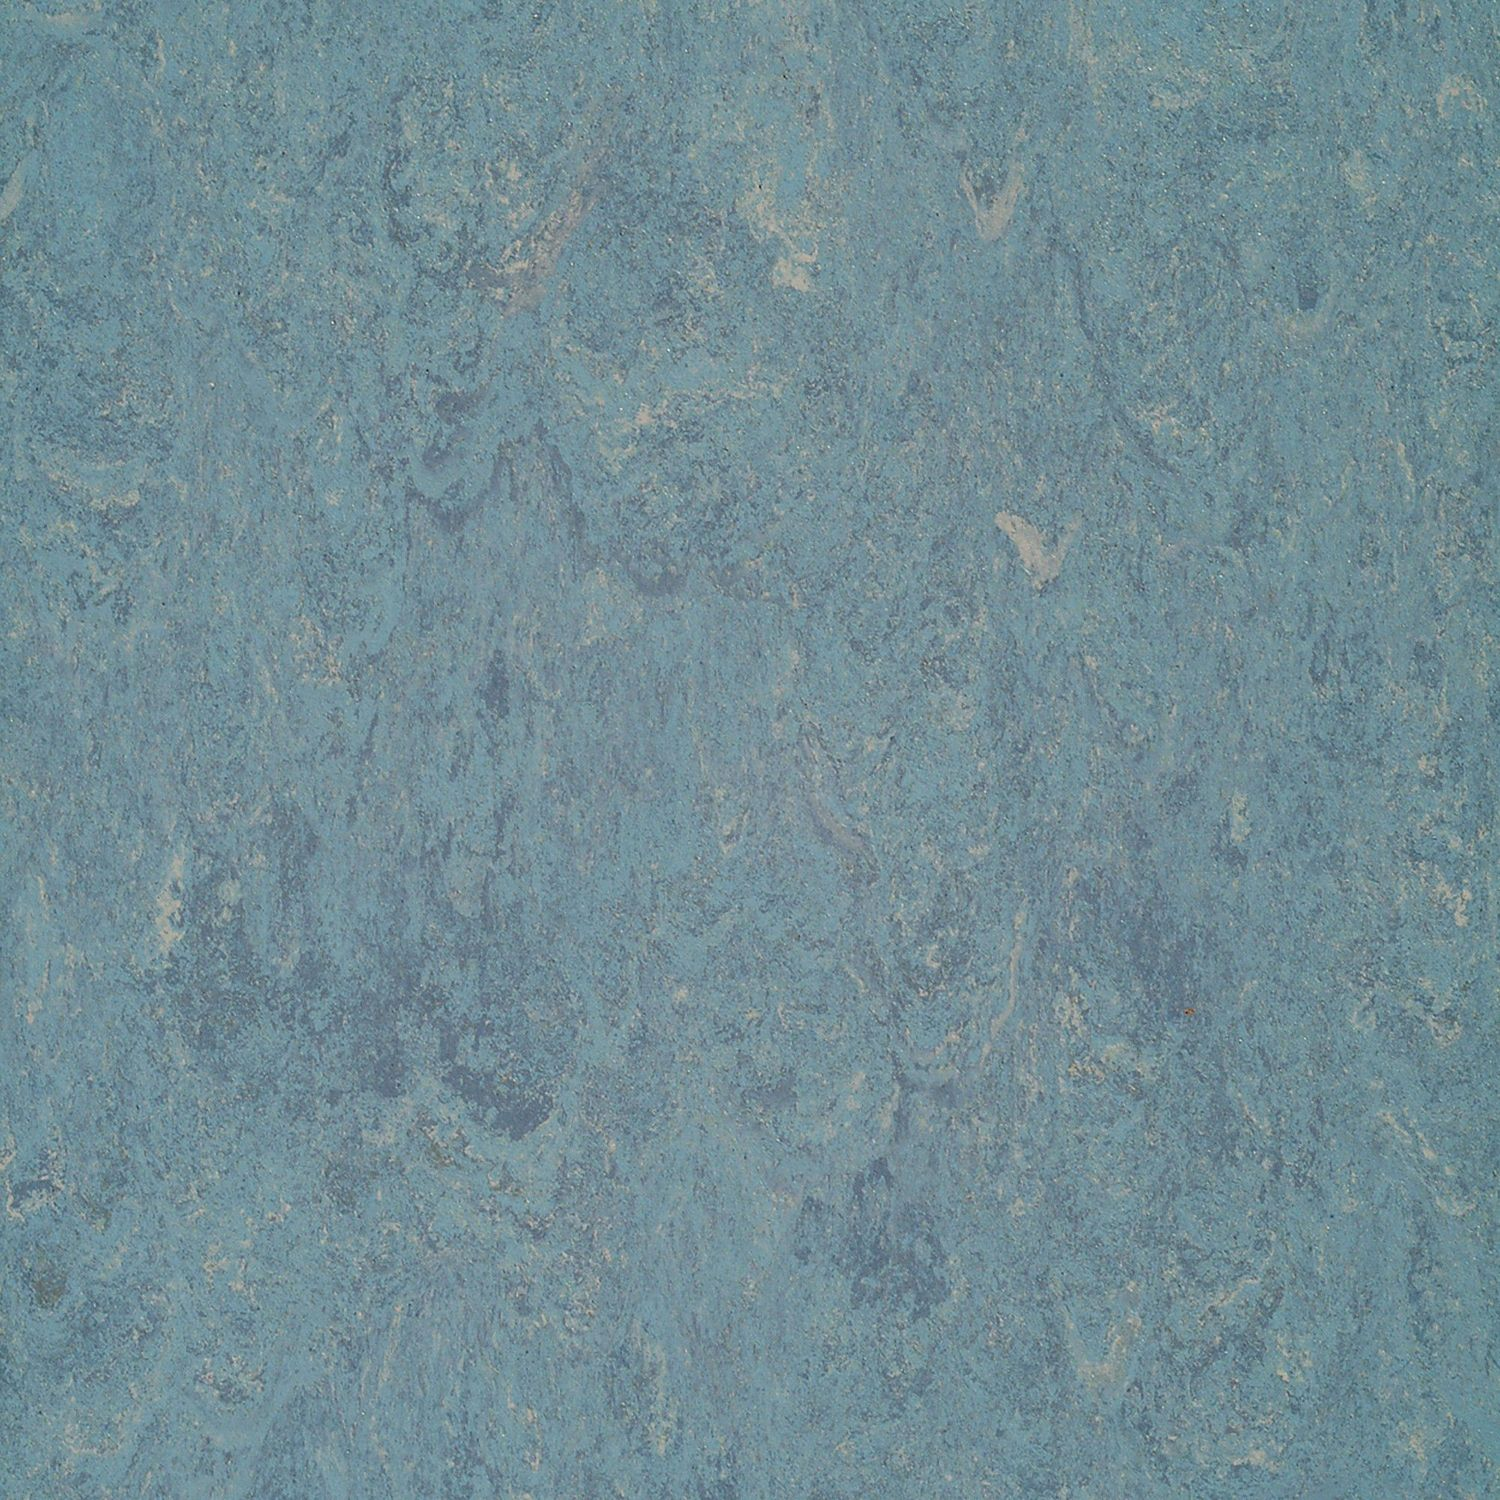 Linoleum Flooring Commercial Smooth Colored Concrete Look